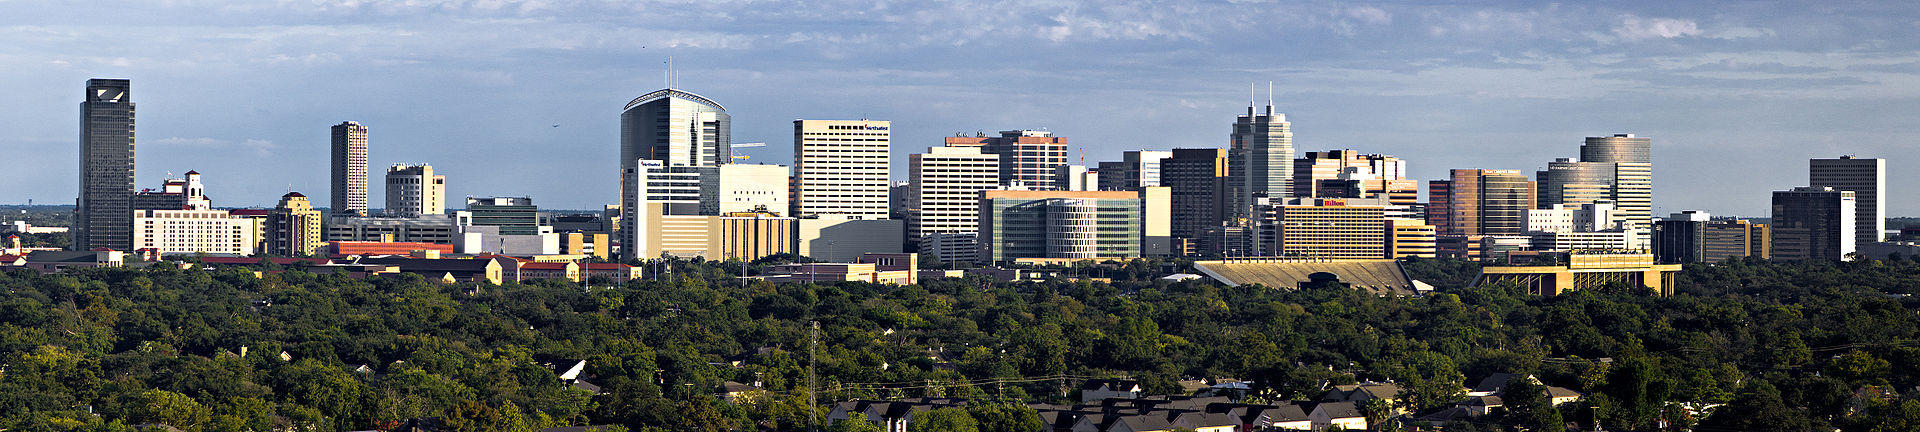 Texas Medical Center is the largest medical complex in the world.